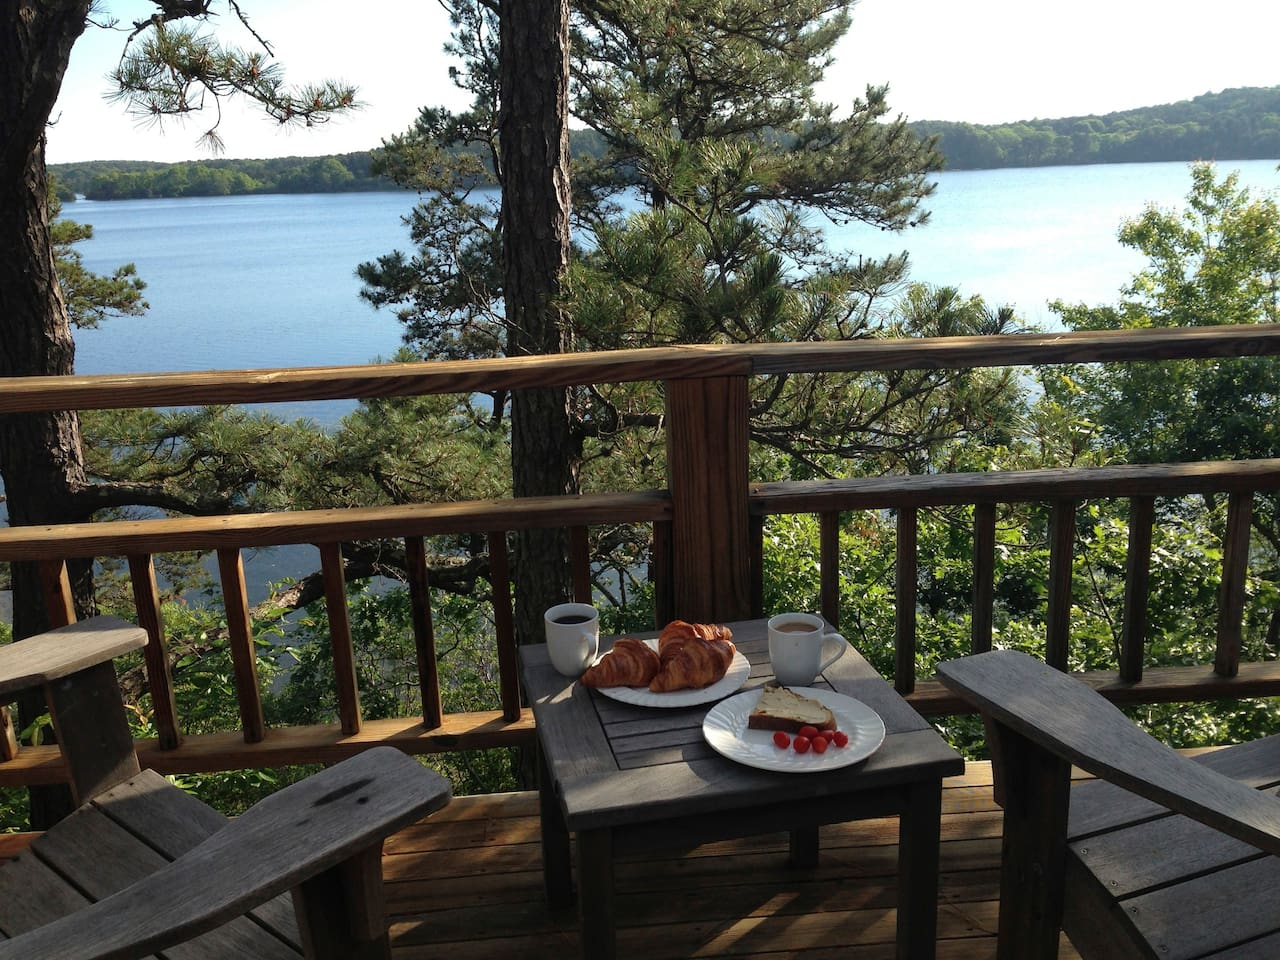 Breakfast on the Deck - As Good As It Gets - Only Better